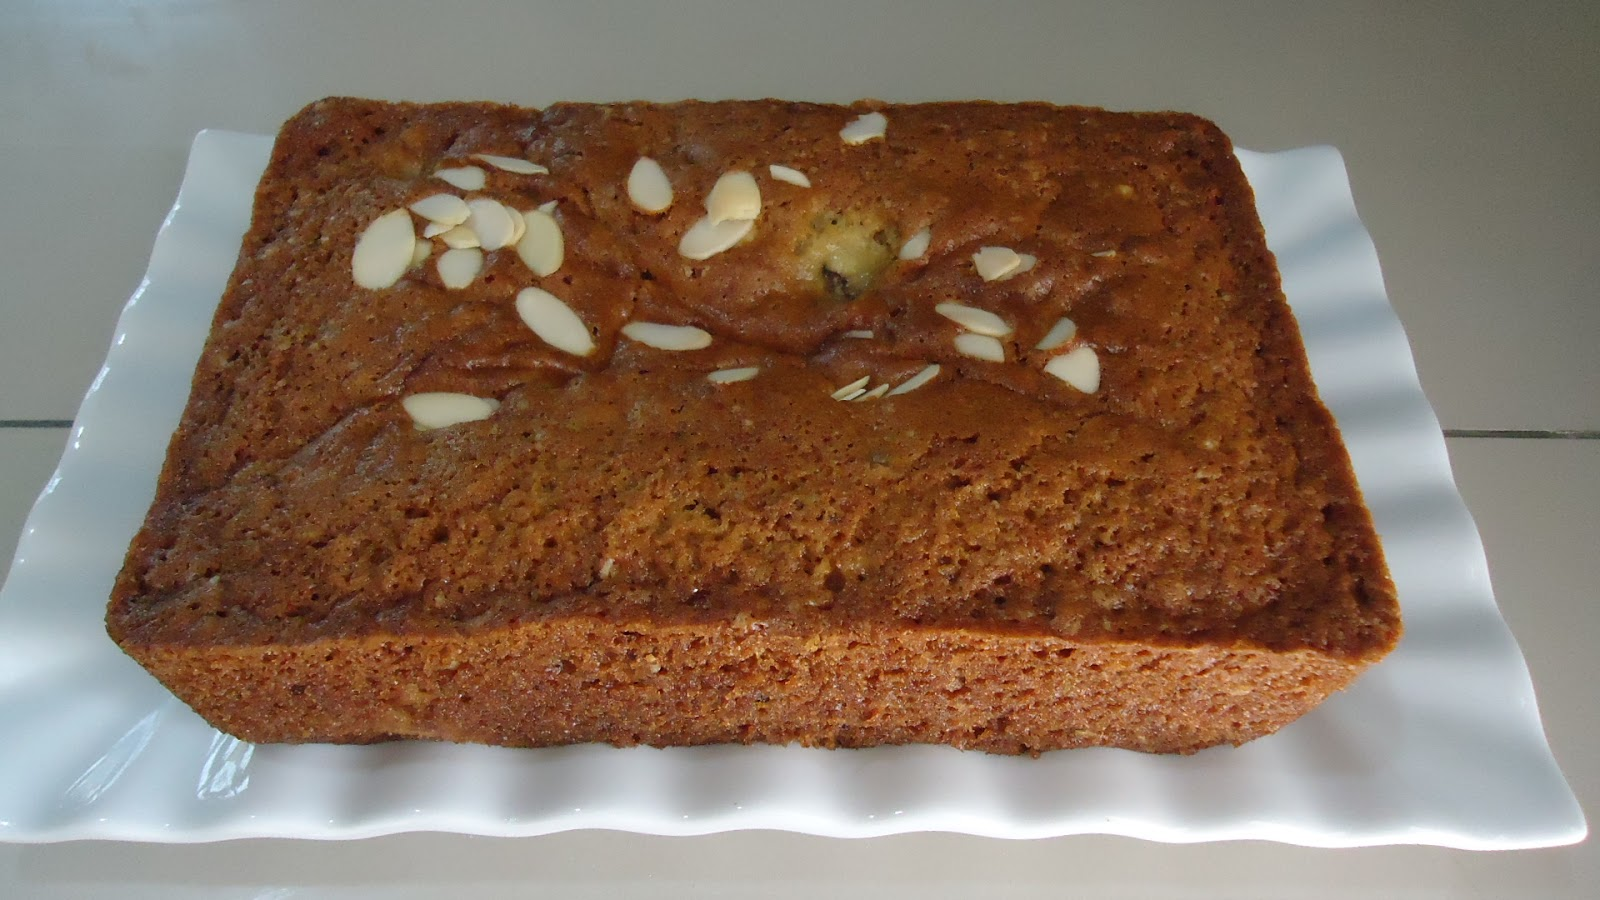 Zara ♥ Baking: JANET'S RICH BANANA BREAD...